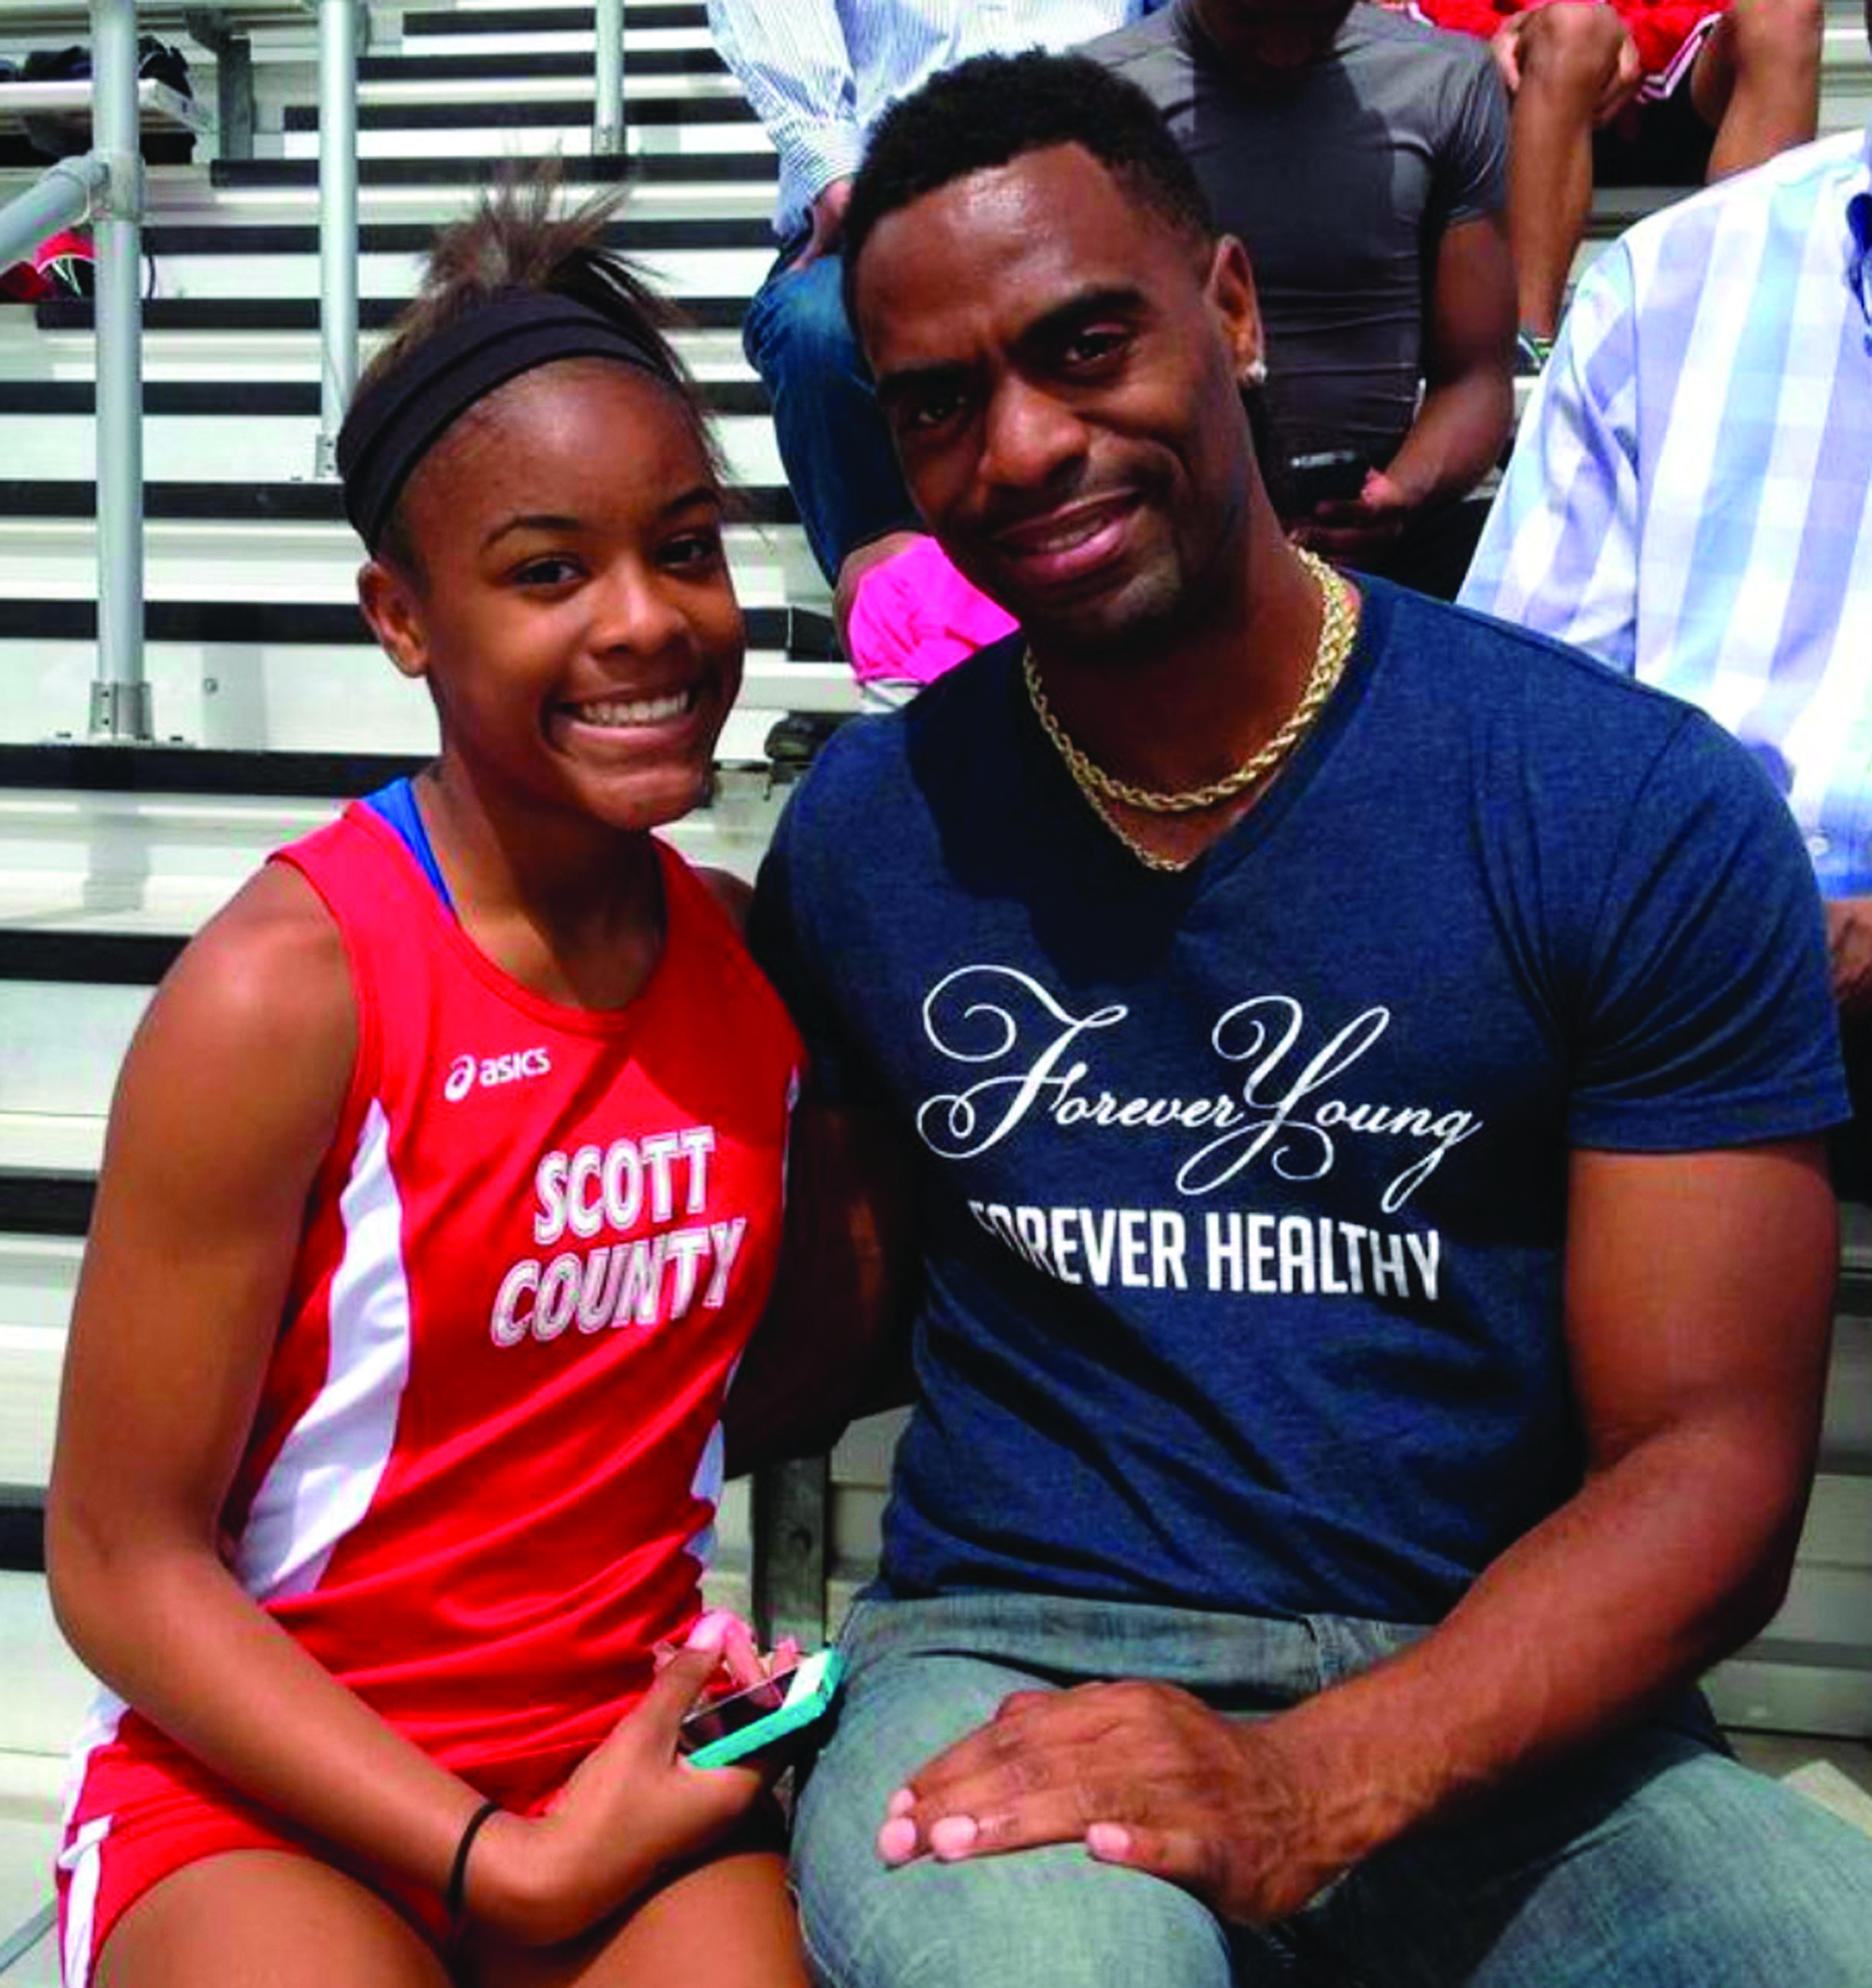 In this May 3, 2014, file photo, Trinity Gay, a seventh-grader racing for her Scott County High School team, poses for a photo with her father, Tyson Gay, after she won the 100 meters and was part of the winning 4-by-100 and 4-by-200 relays at the meet in Georgetown, Ky. The heartache still weighs heavily on Tyson Gay. But he keeps sprinting in her memory. The 15-year-old daughter of the Olympic sprinter was shot and killed in October outside a restaurant in Lexington, Kentucky. AP NEWSWIRE